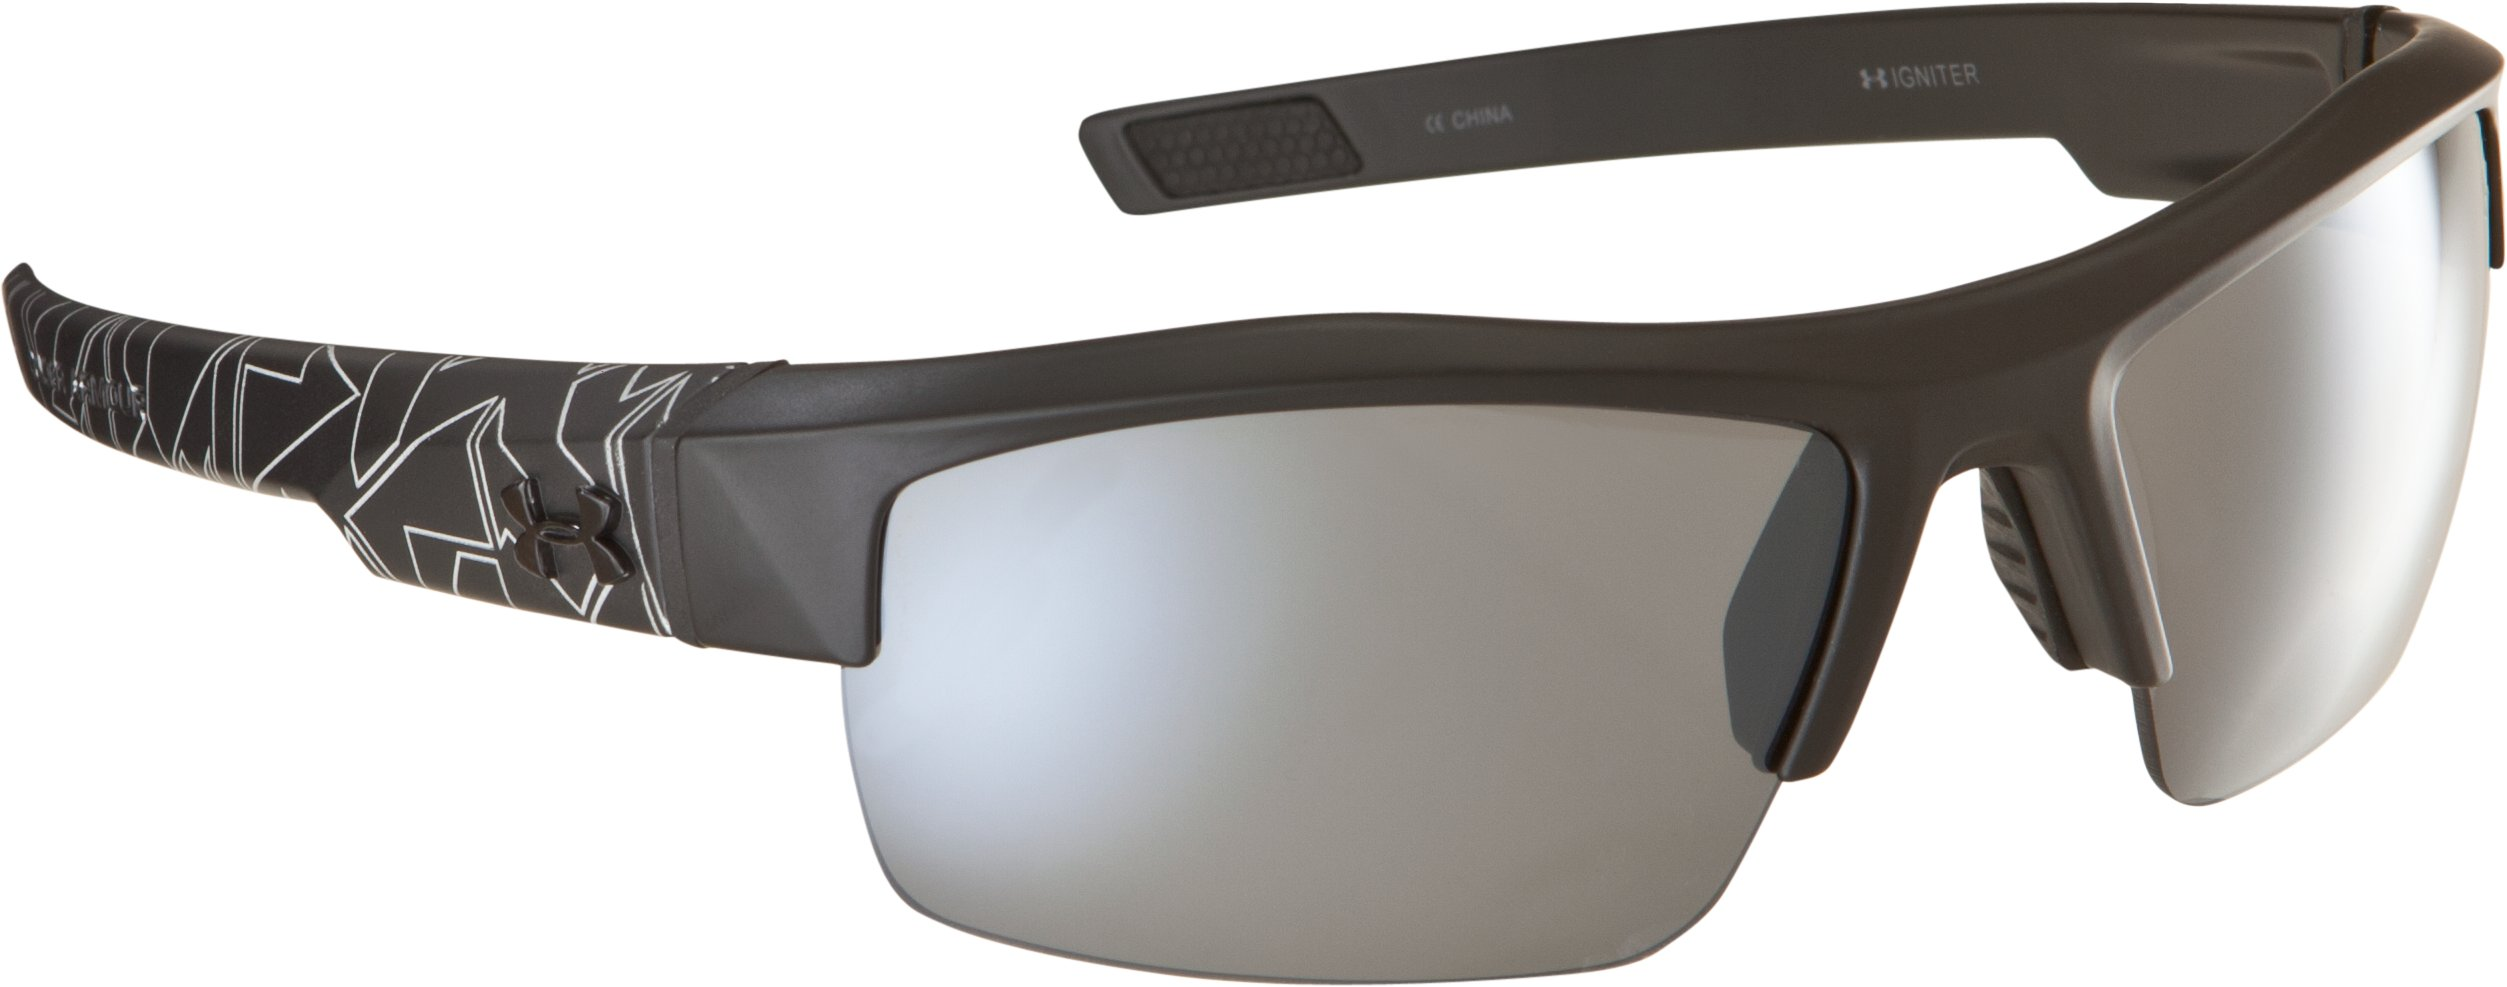 UA Igniter Multiflection™ Sunglasses, Satin Black With Print, undefined